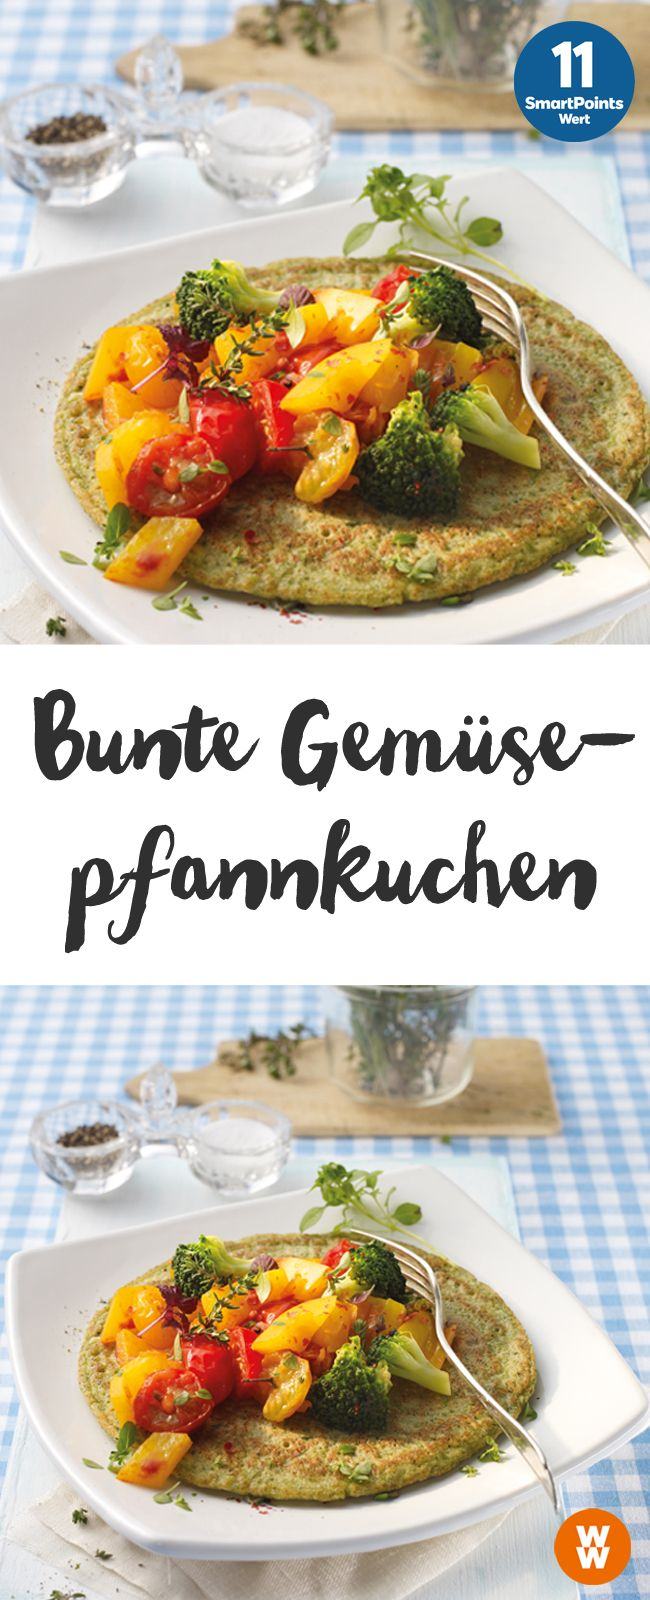 Bunte Gemüsepfannkuchen | 2 Portionen, 11 Punkte/Portion, Weight Watchers, fertig in 35 min.